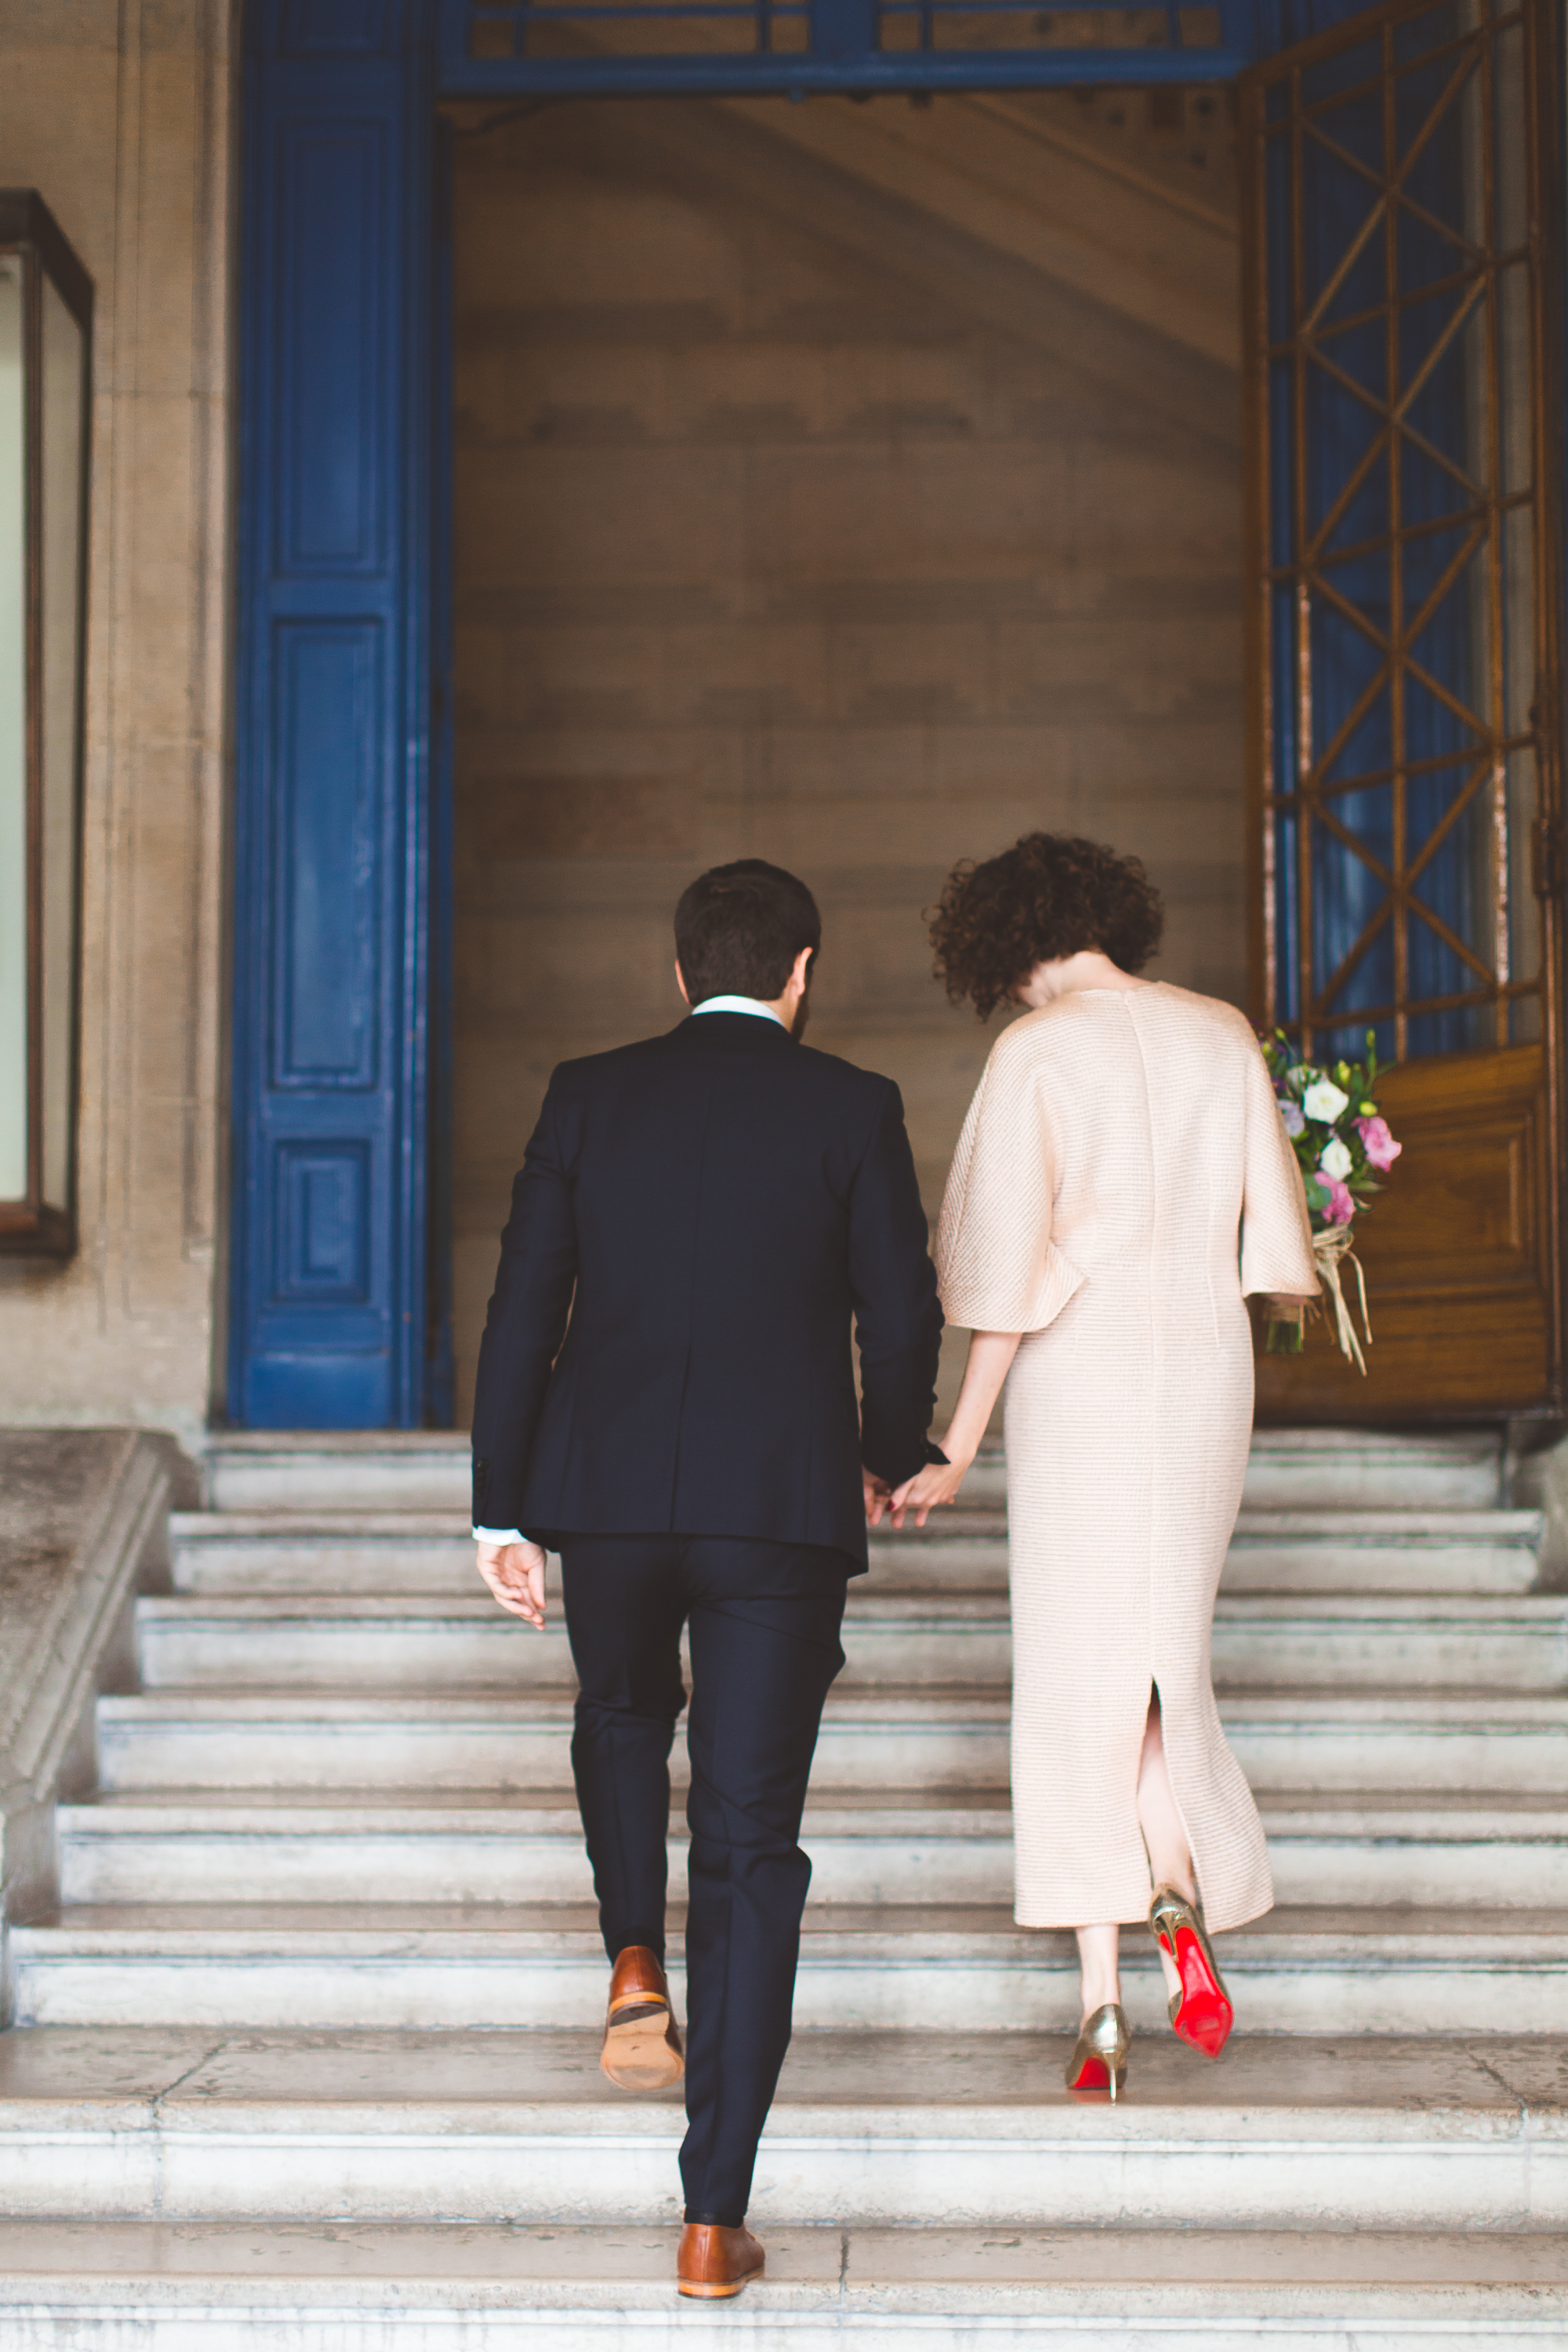 Emma&Nico_WeddingParis_by_UlaBlocksage-16.jpg